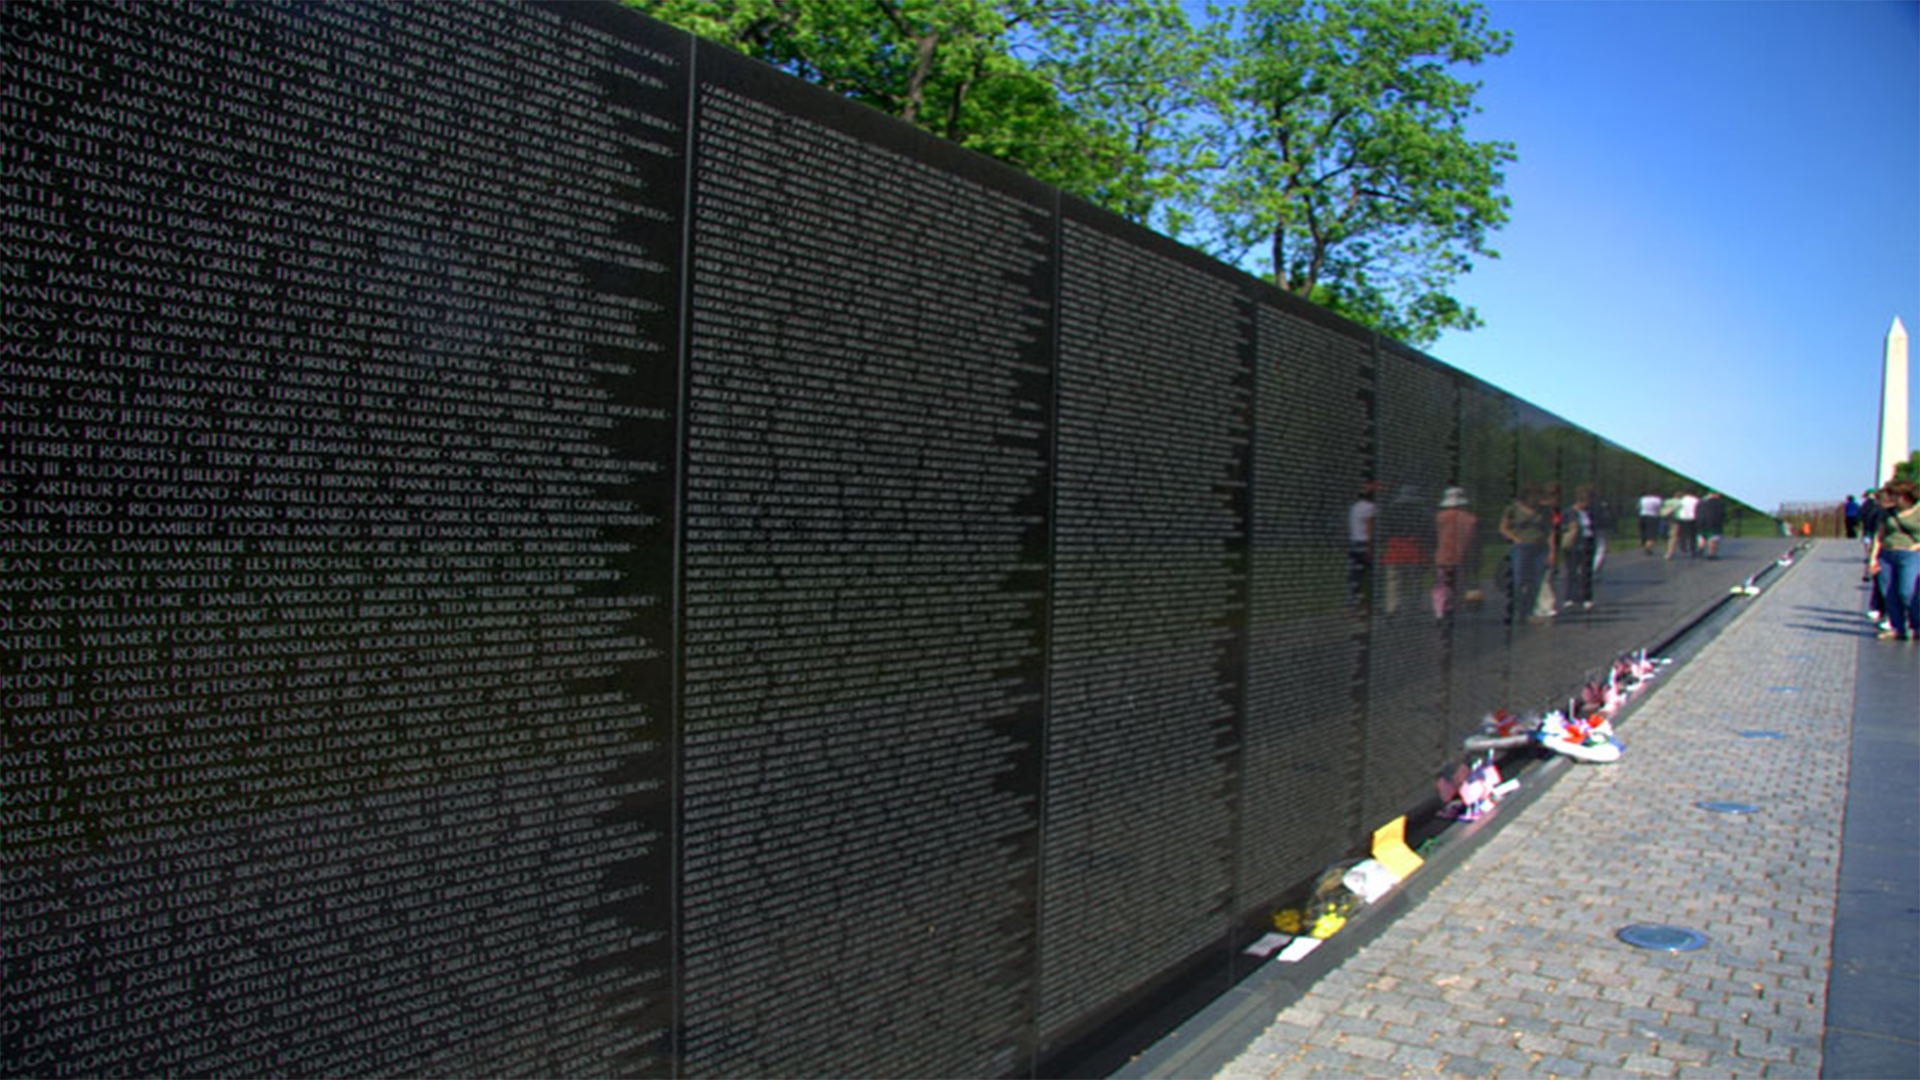 This 21 Year Old College Student Designed The Vietnam Veterans Memorial